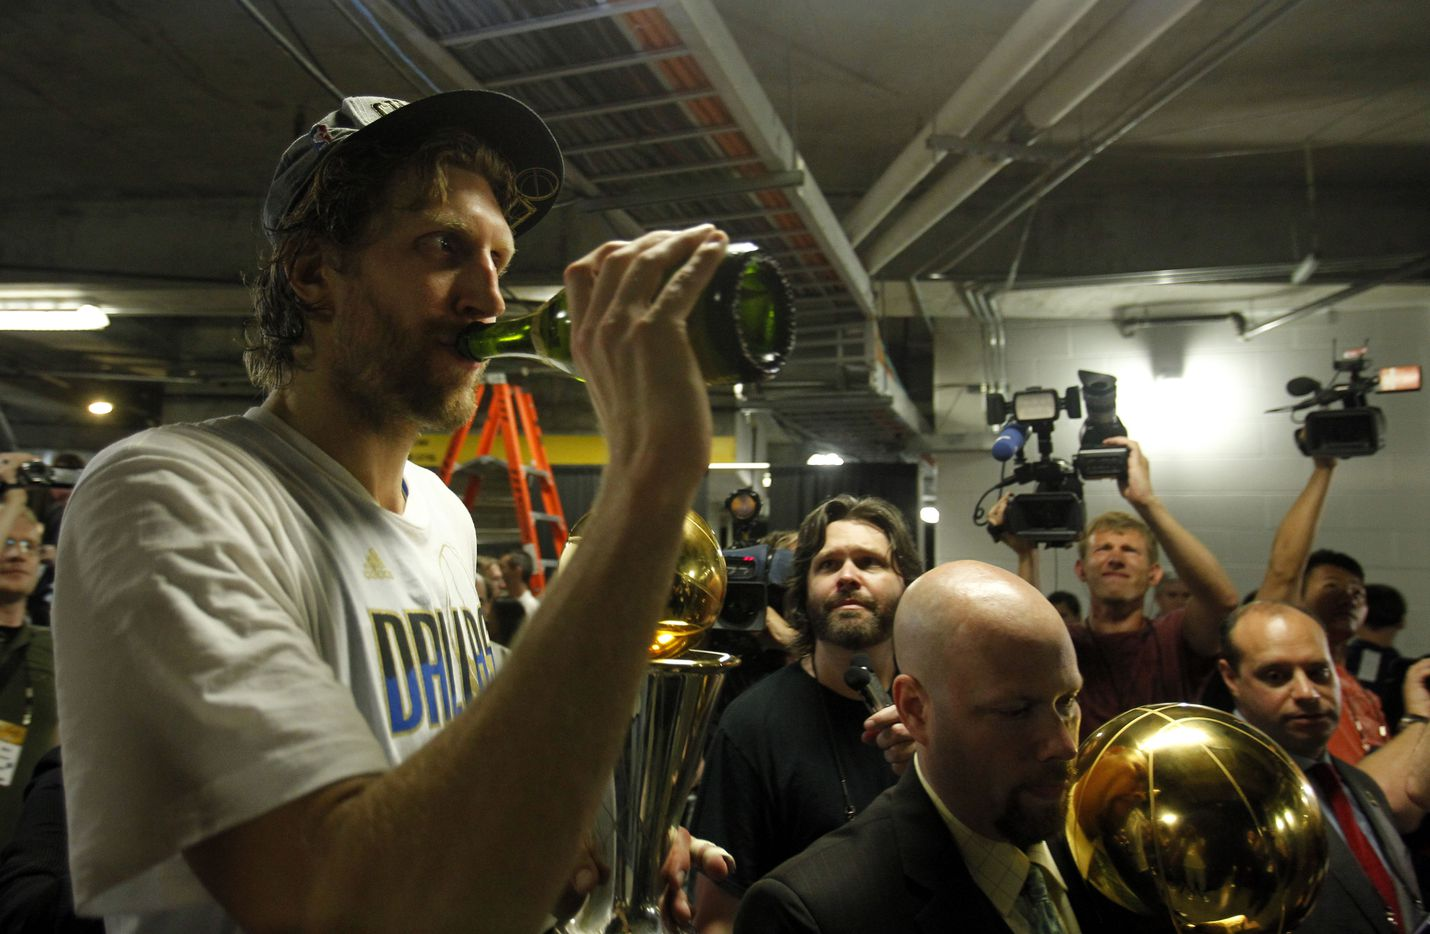 Dallas Mavericks power forward Dirk Nowitzki (41) drinks champagne as he is escorted to another interview after winning in game six of the NBA Finals between the Miami Heat and the Dallas Mavericks at the American Airlines Arena in Miami, Florida, June 12, 2011. The Mavericks won 105-95 to take the title. (Vernon Bryant/The Dallas Morning News)